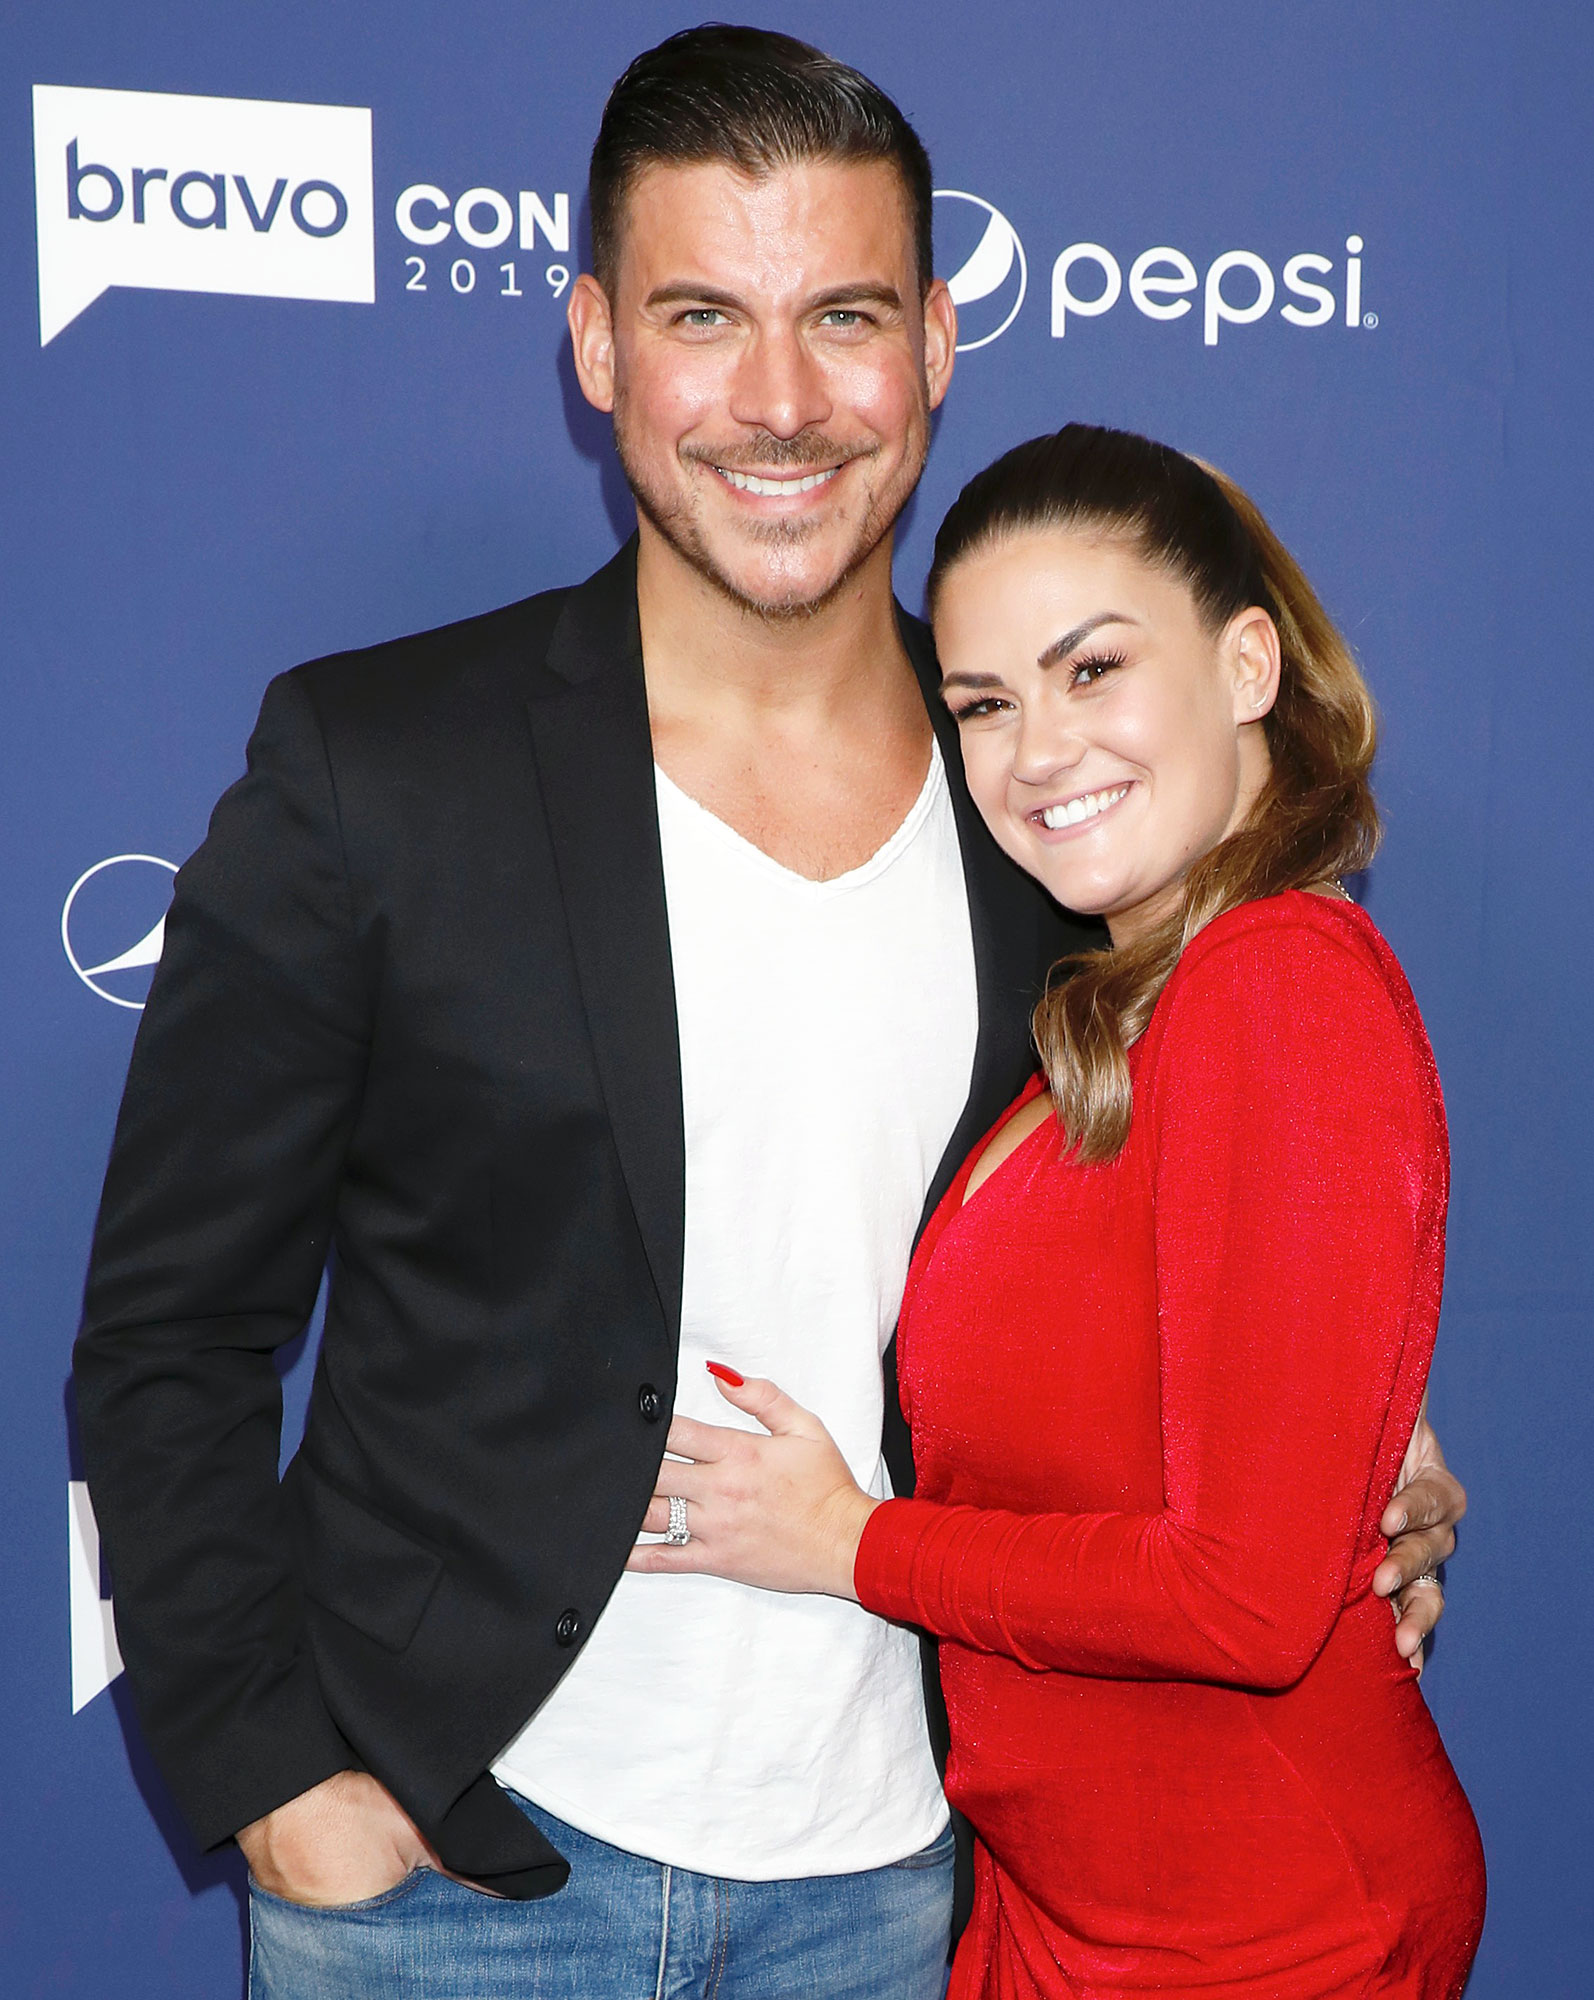 Jax Taylor and Brittany Cartwright attend BravoCon Jax Taylor Goes Off on Tom Sandoval After They Fight About His Wedding Pastor on Vanderpump Rules